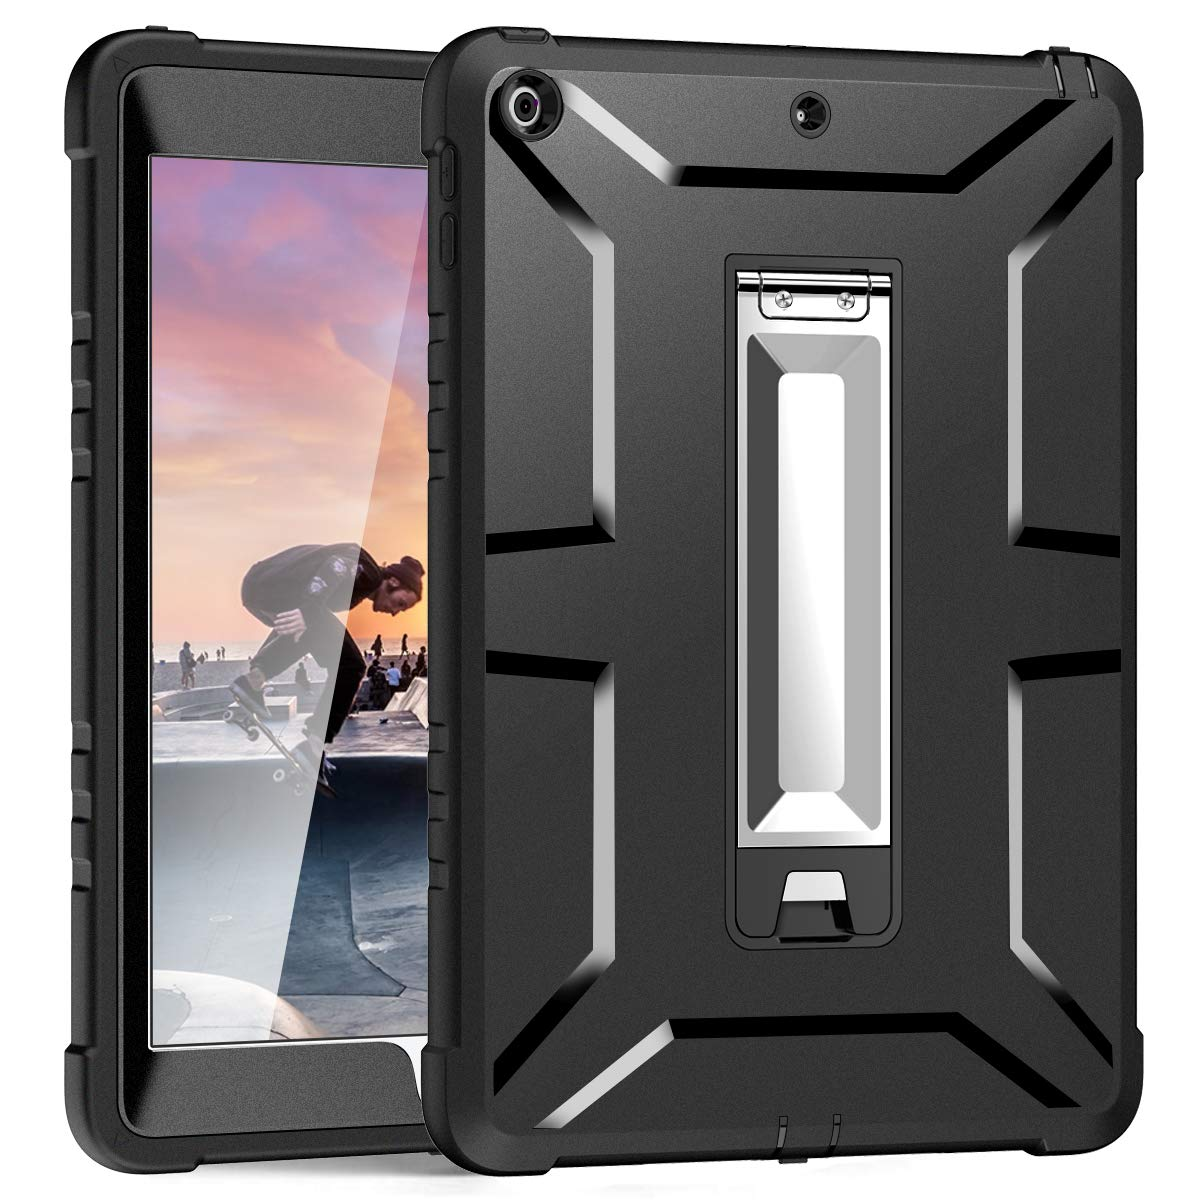 Hocase iPad 6th/5th Generation Case with Screen Protector & Stand, iPad 9.7 2018/2017 Case, Heavy Duty Rugged Shockproof TPU Rubber Bumper Hard Protective Case for iPad A1893/A1954/A1822/A1823 - Black